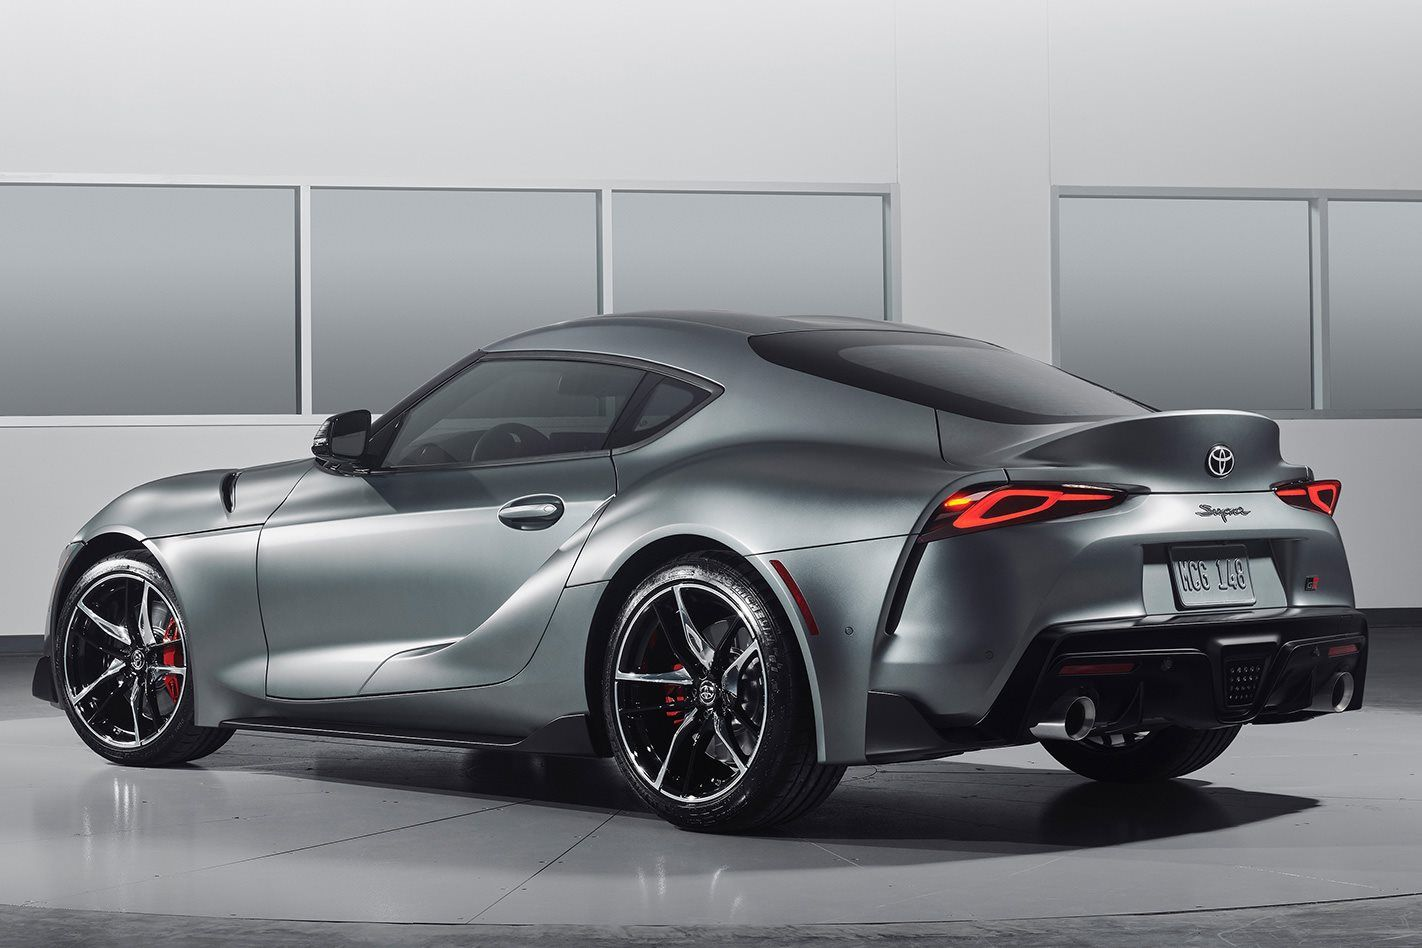 2020 Toyota Gr Supra Revealed Toyota Supra New Toyota Supra Sports Car